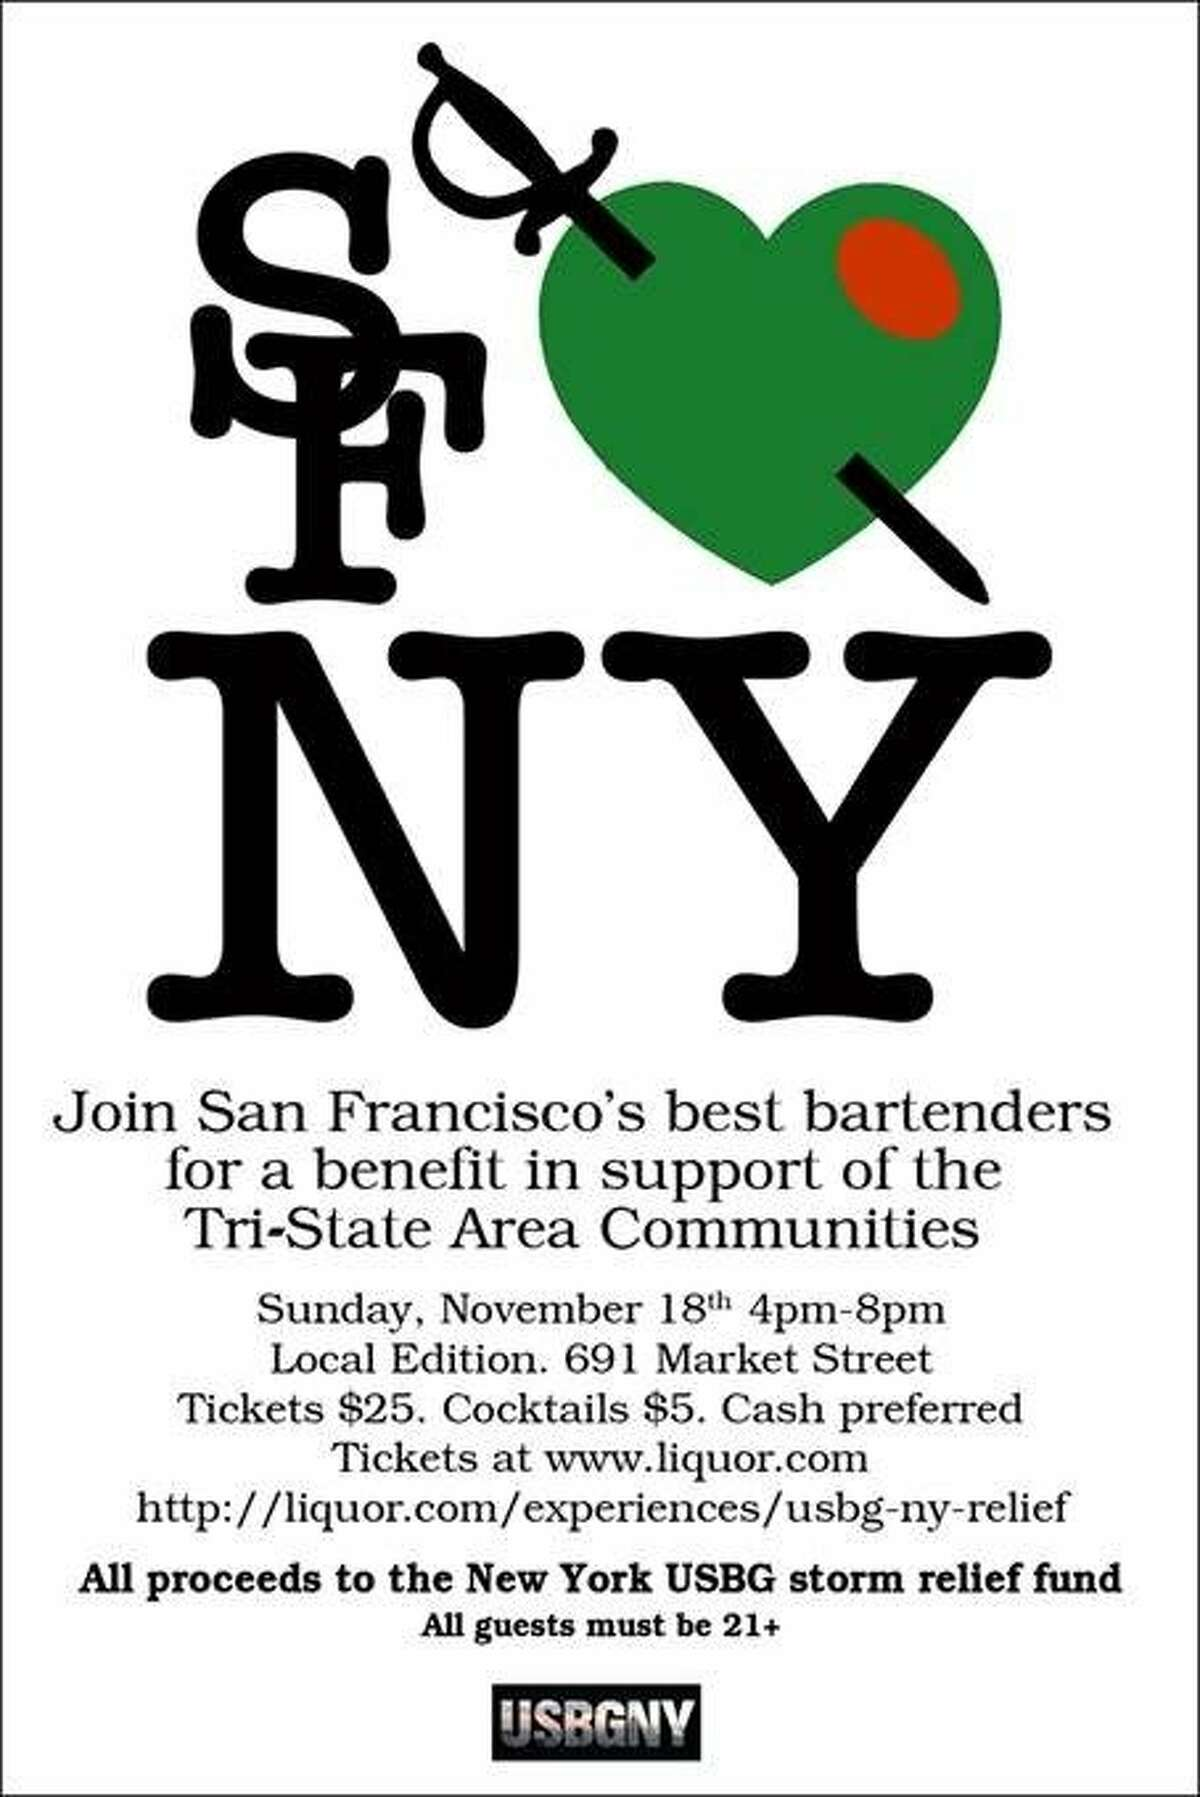 buzz item Join San Francisco's best bartenders for a benefit in support of the Tri-State Area Communities Sunday, Nov 18, 4-8 pm